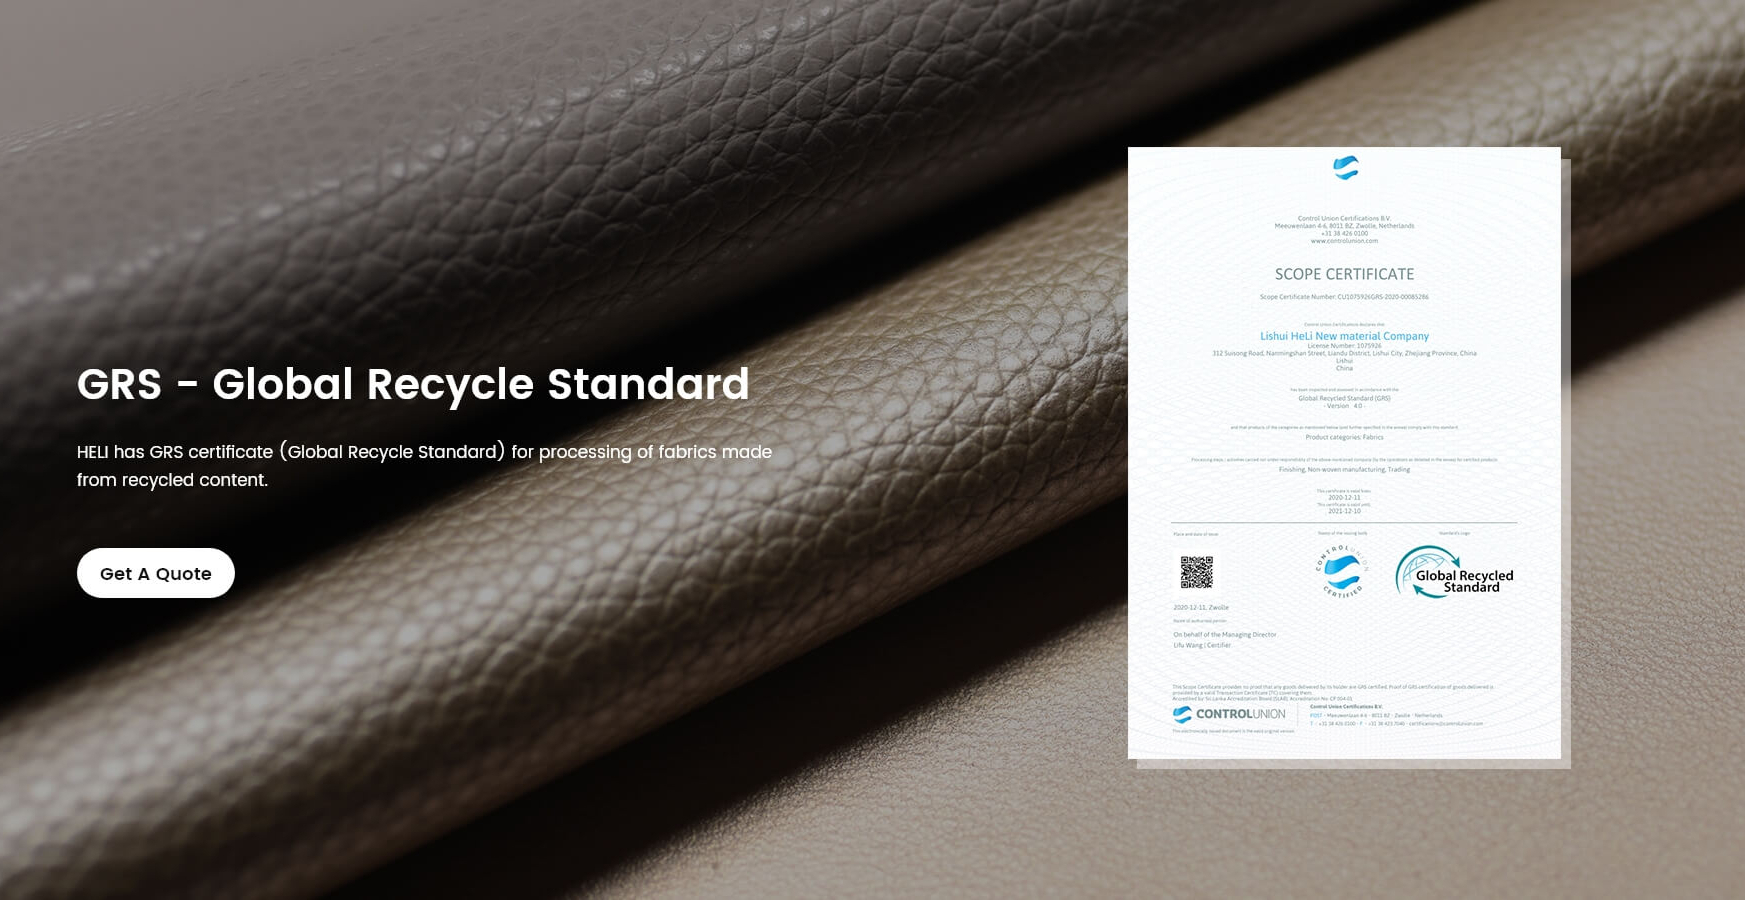 GRS - Global Recycle Standard HELI has GRS certificate (Global Recycle Standard) for processing of fabrics made from recycled content.